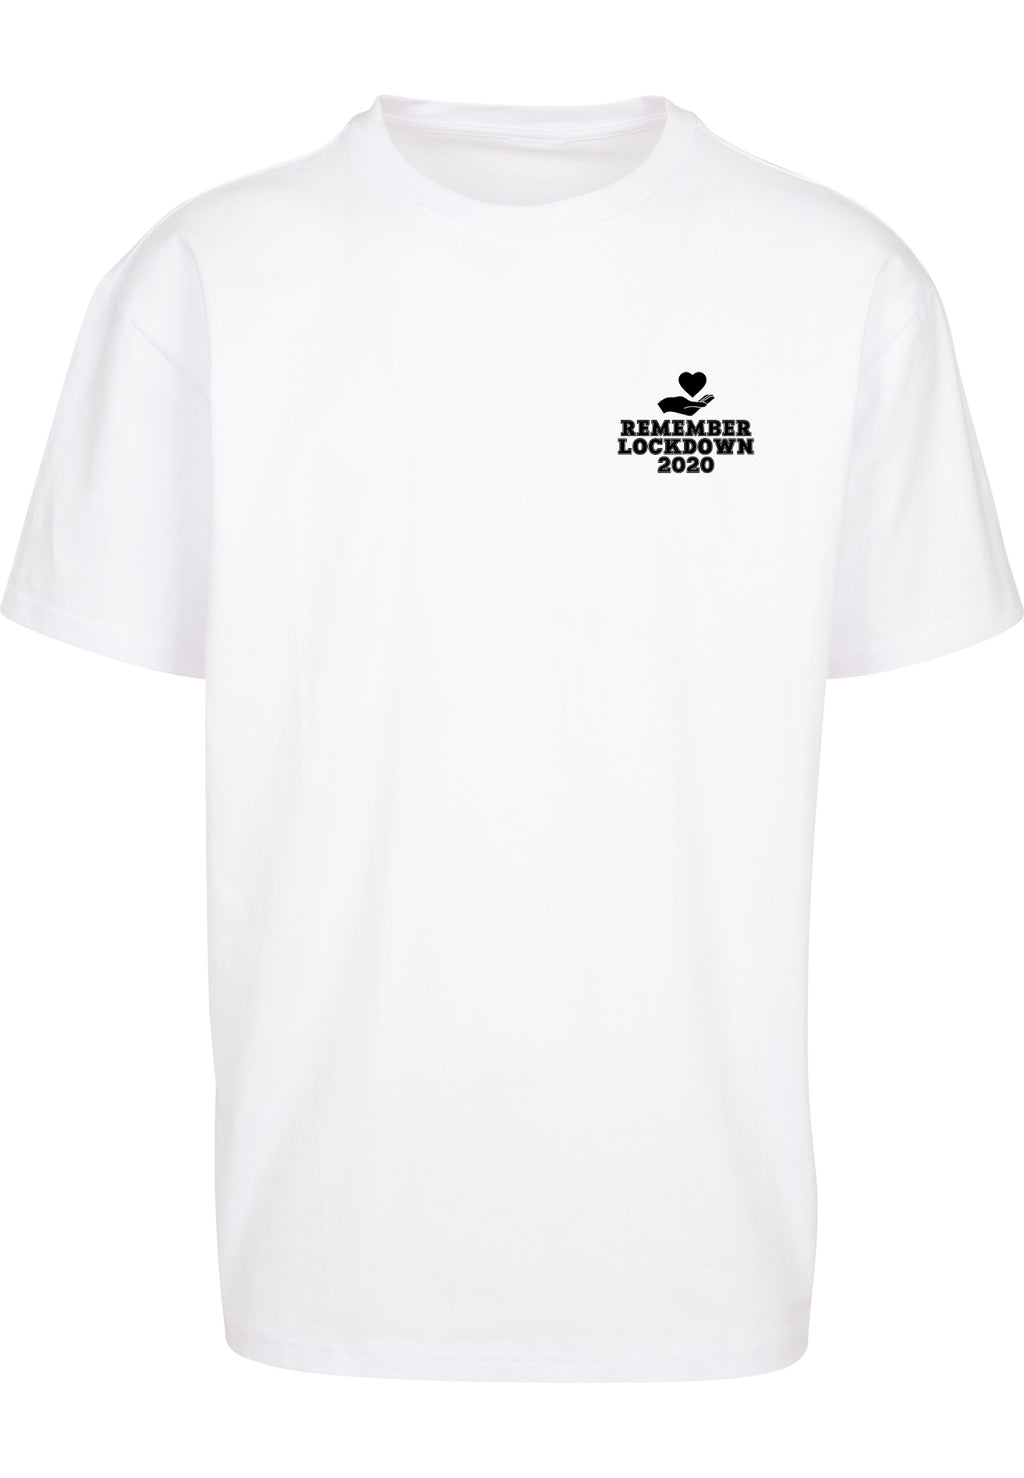 Unisex Lockdown logo 2020 Tee (White)